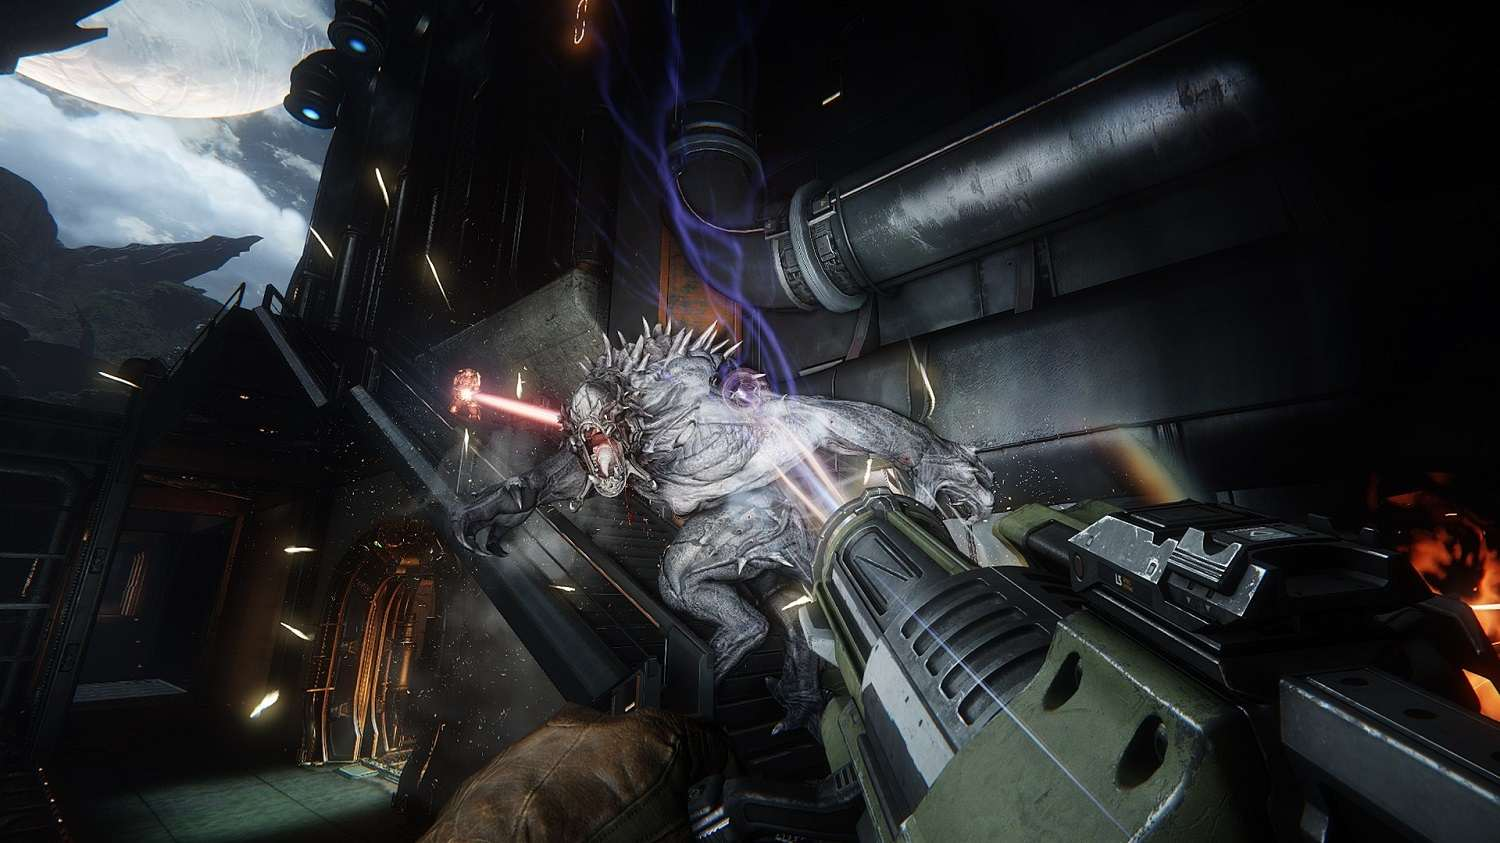 Watch-One-Hour-of-Evolve-Gameplay-with-Plenty-of-New-Features-462545-2